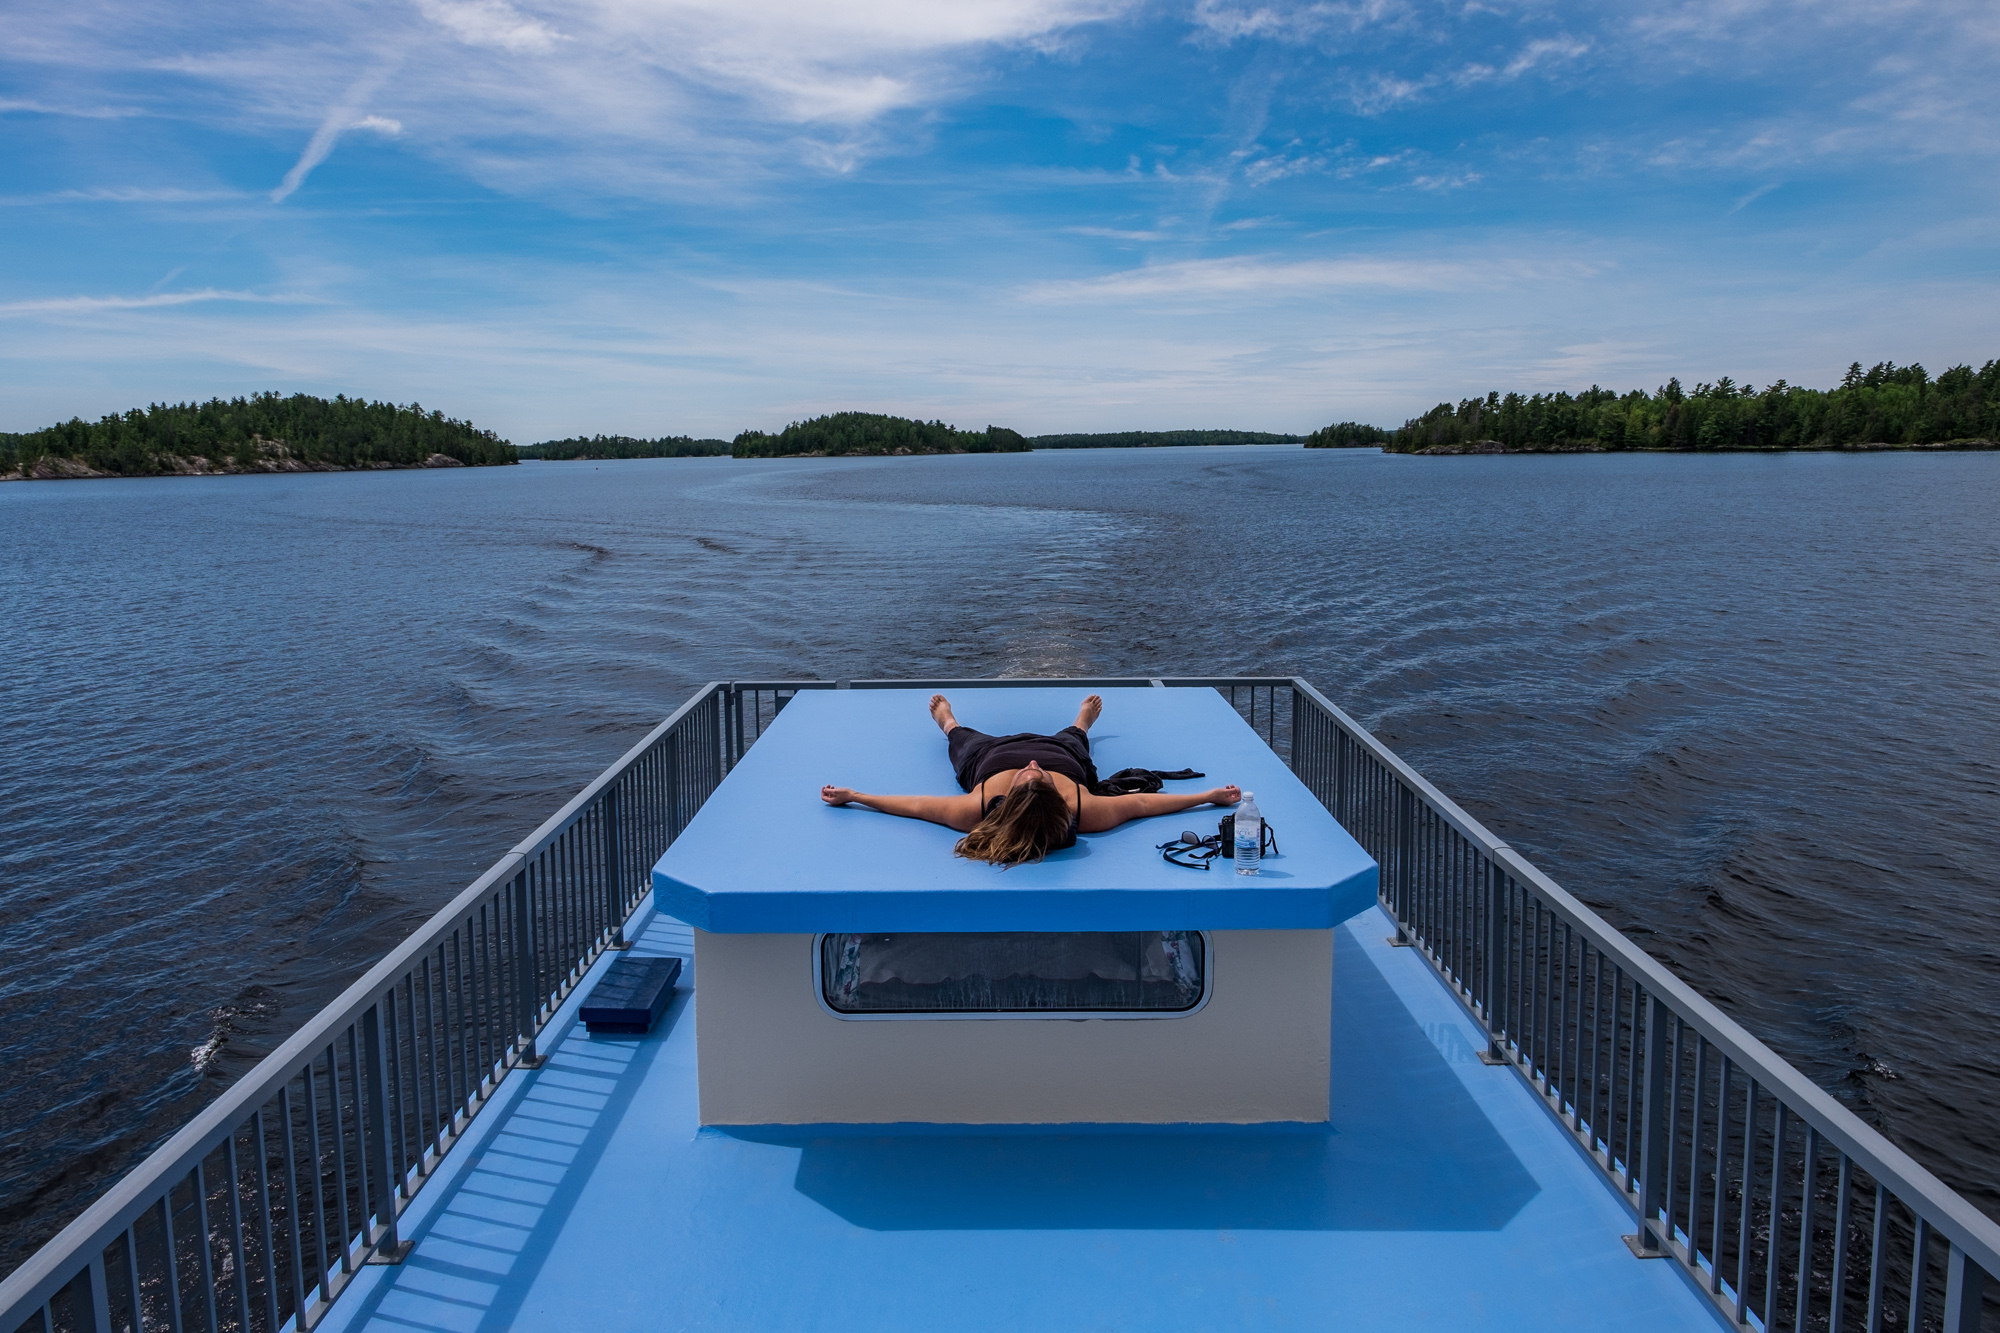 Stef fully enjoying lazy days on the roof deck of the houseboat.